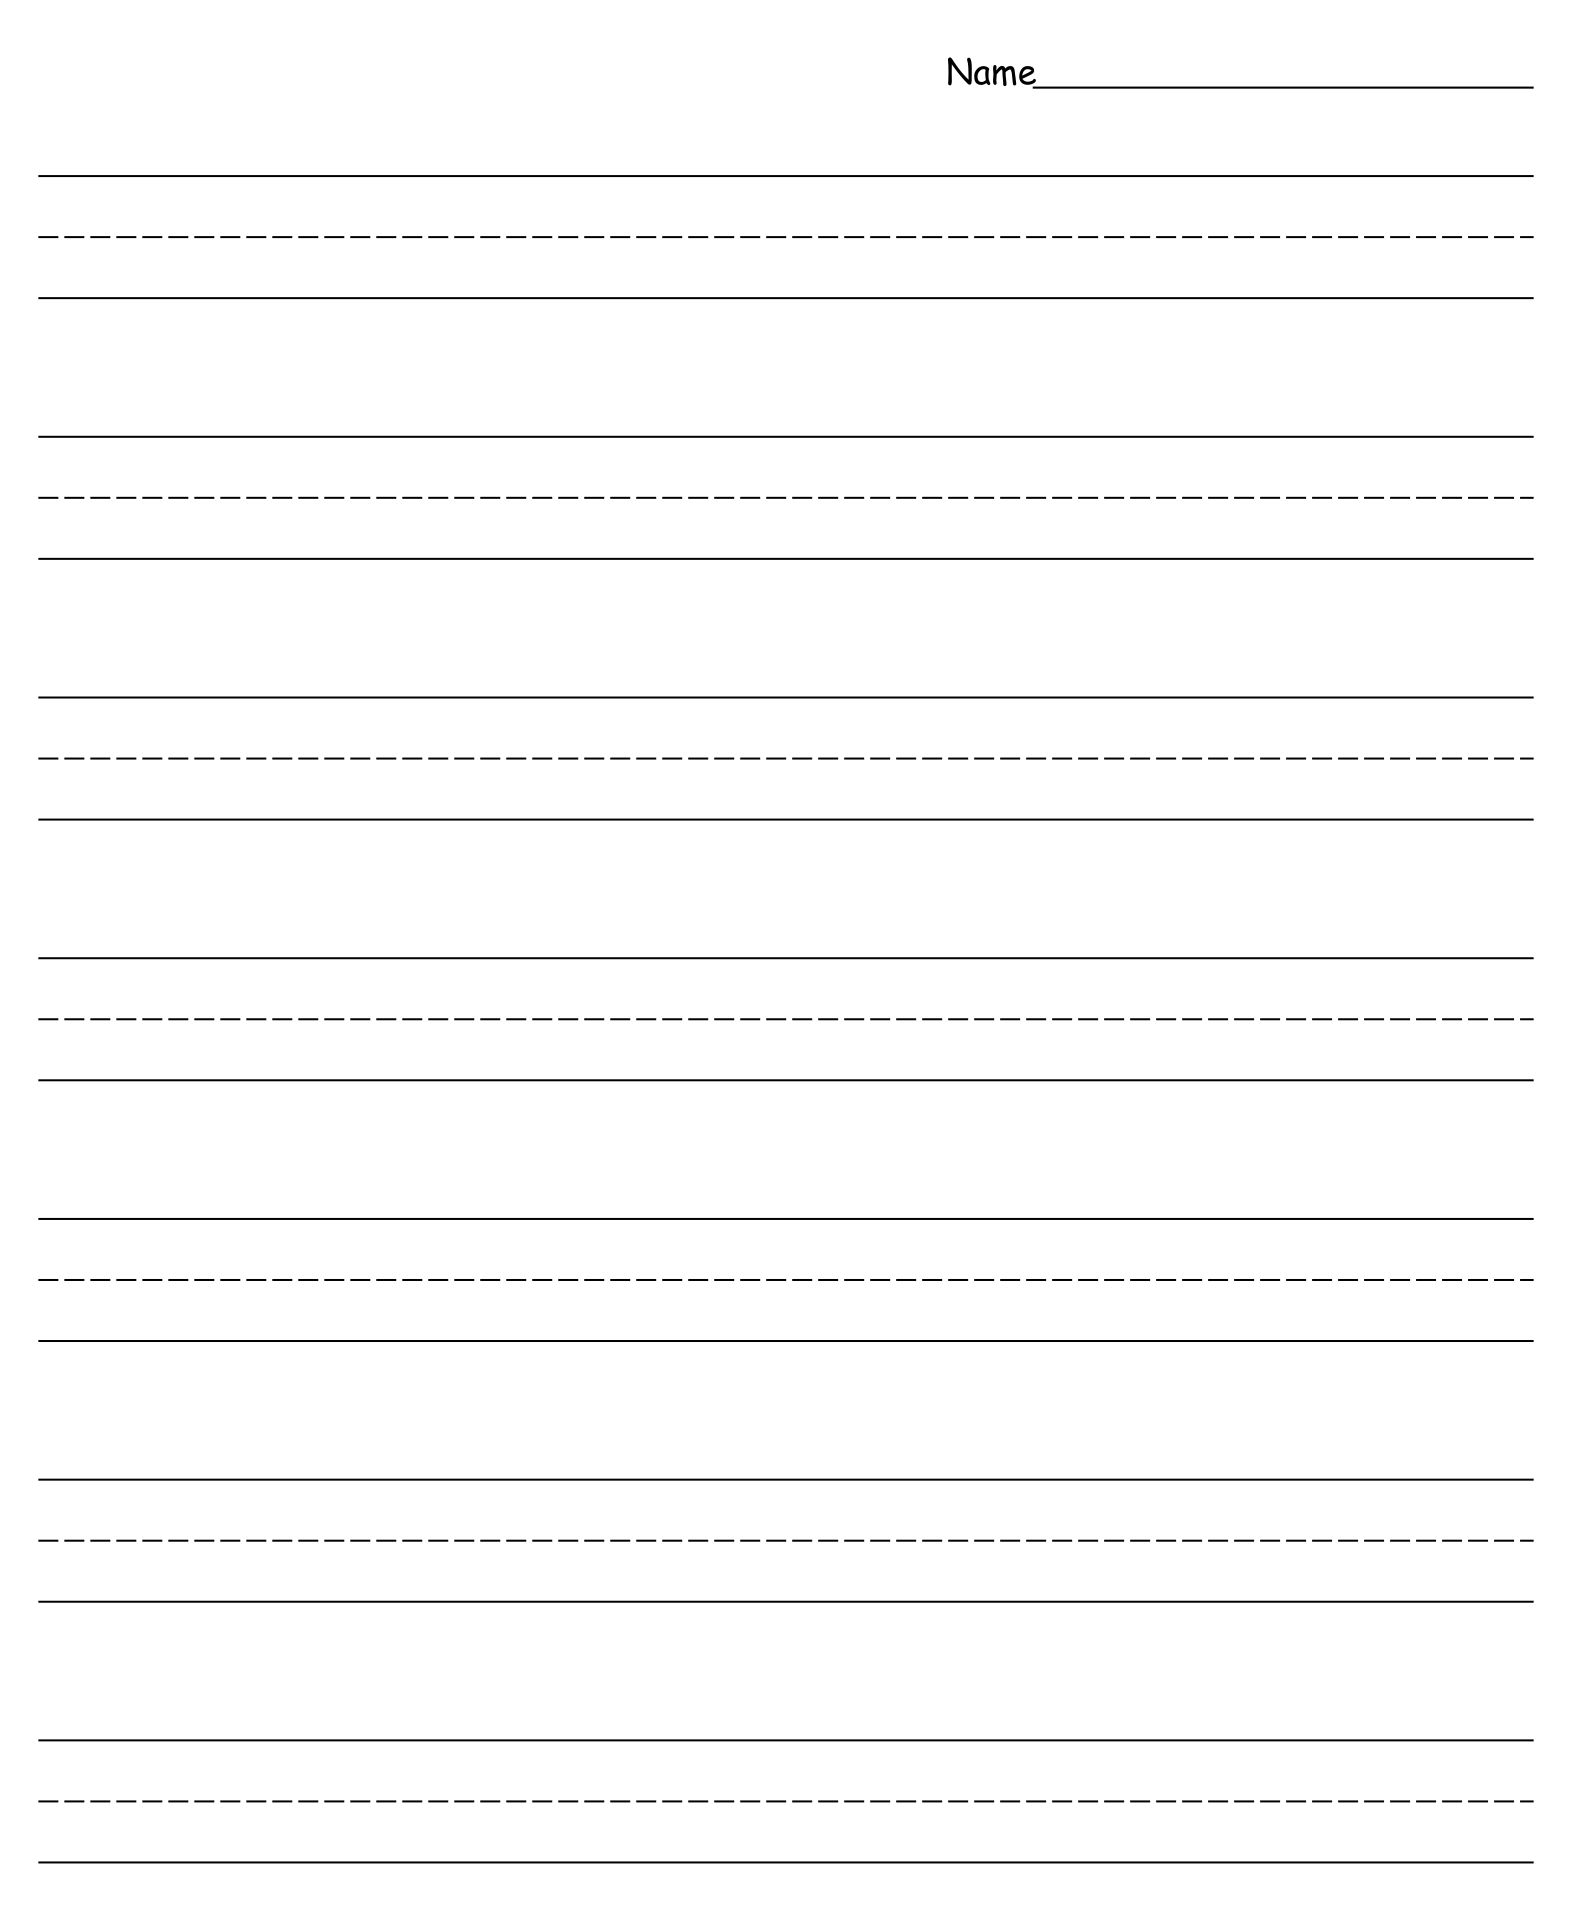 Worksheet Blank Handwriting : Best images of blank cursive worksheets printable free